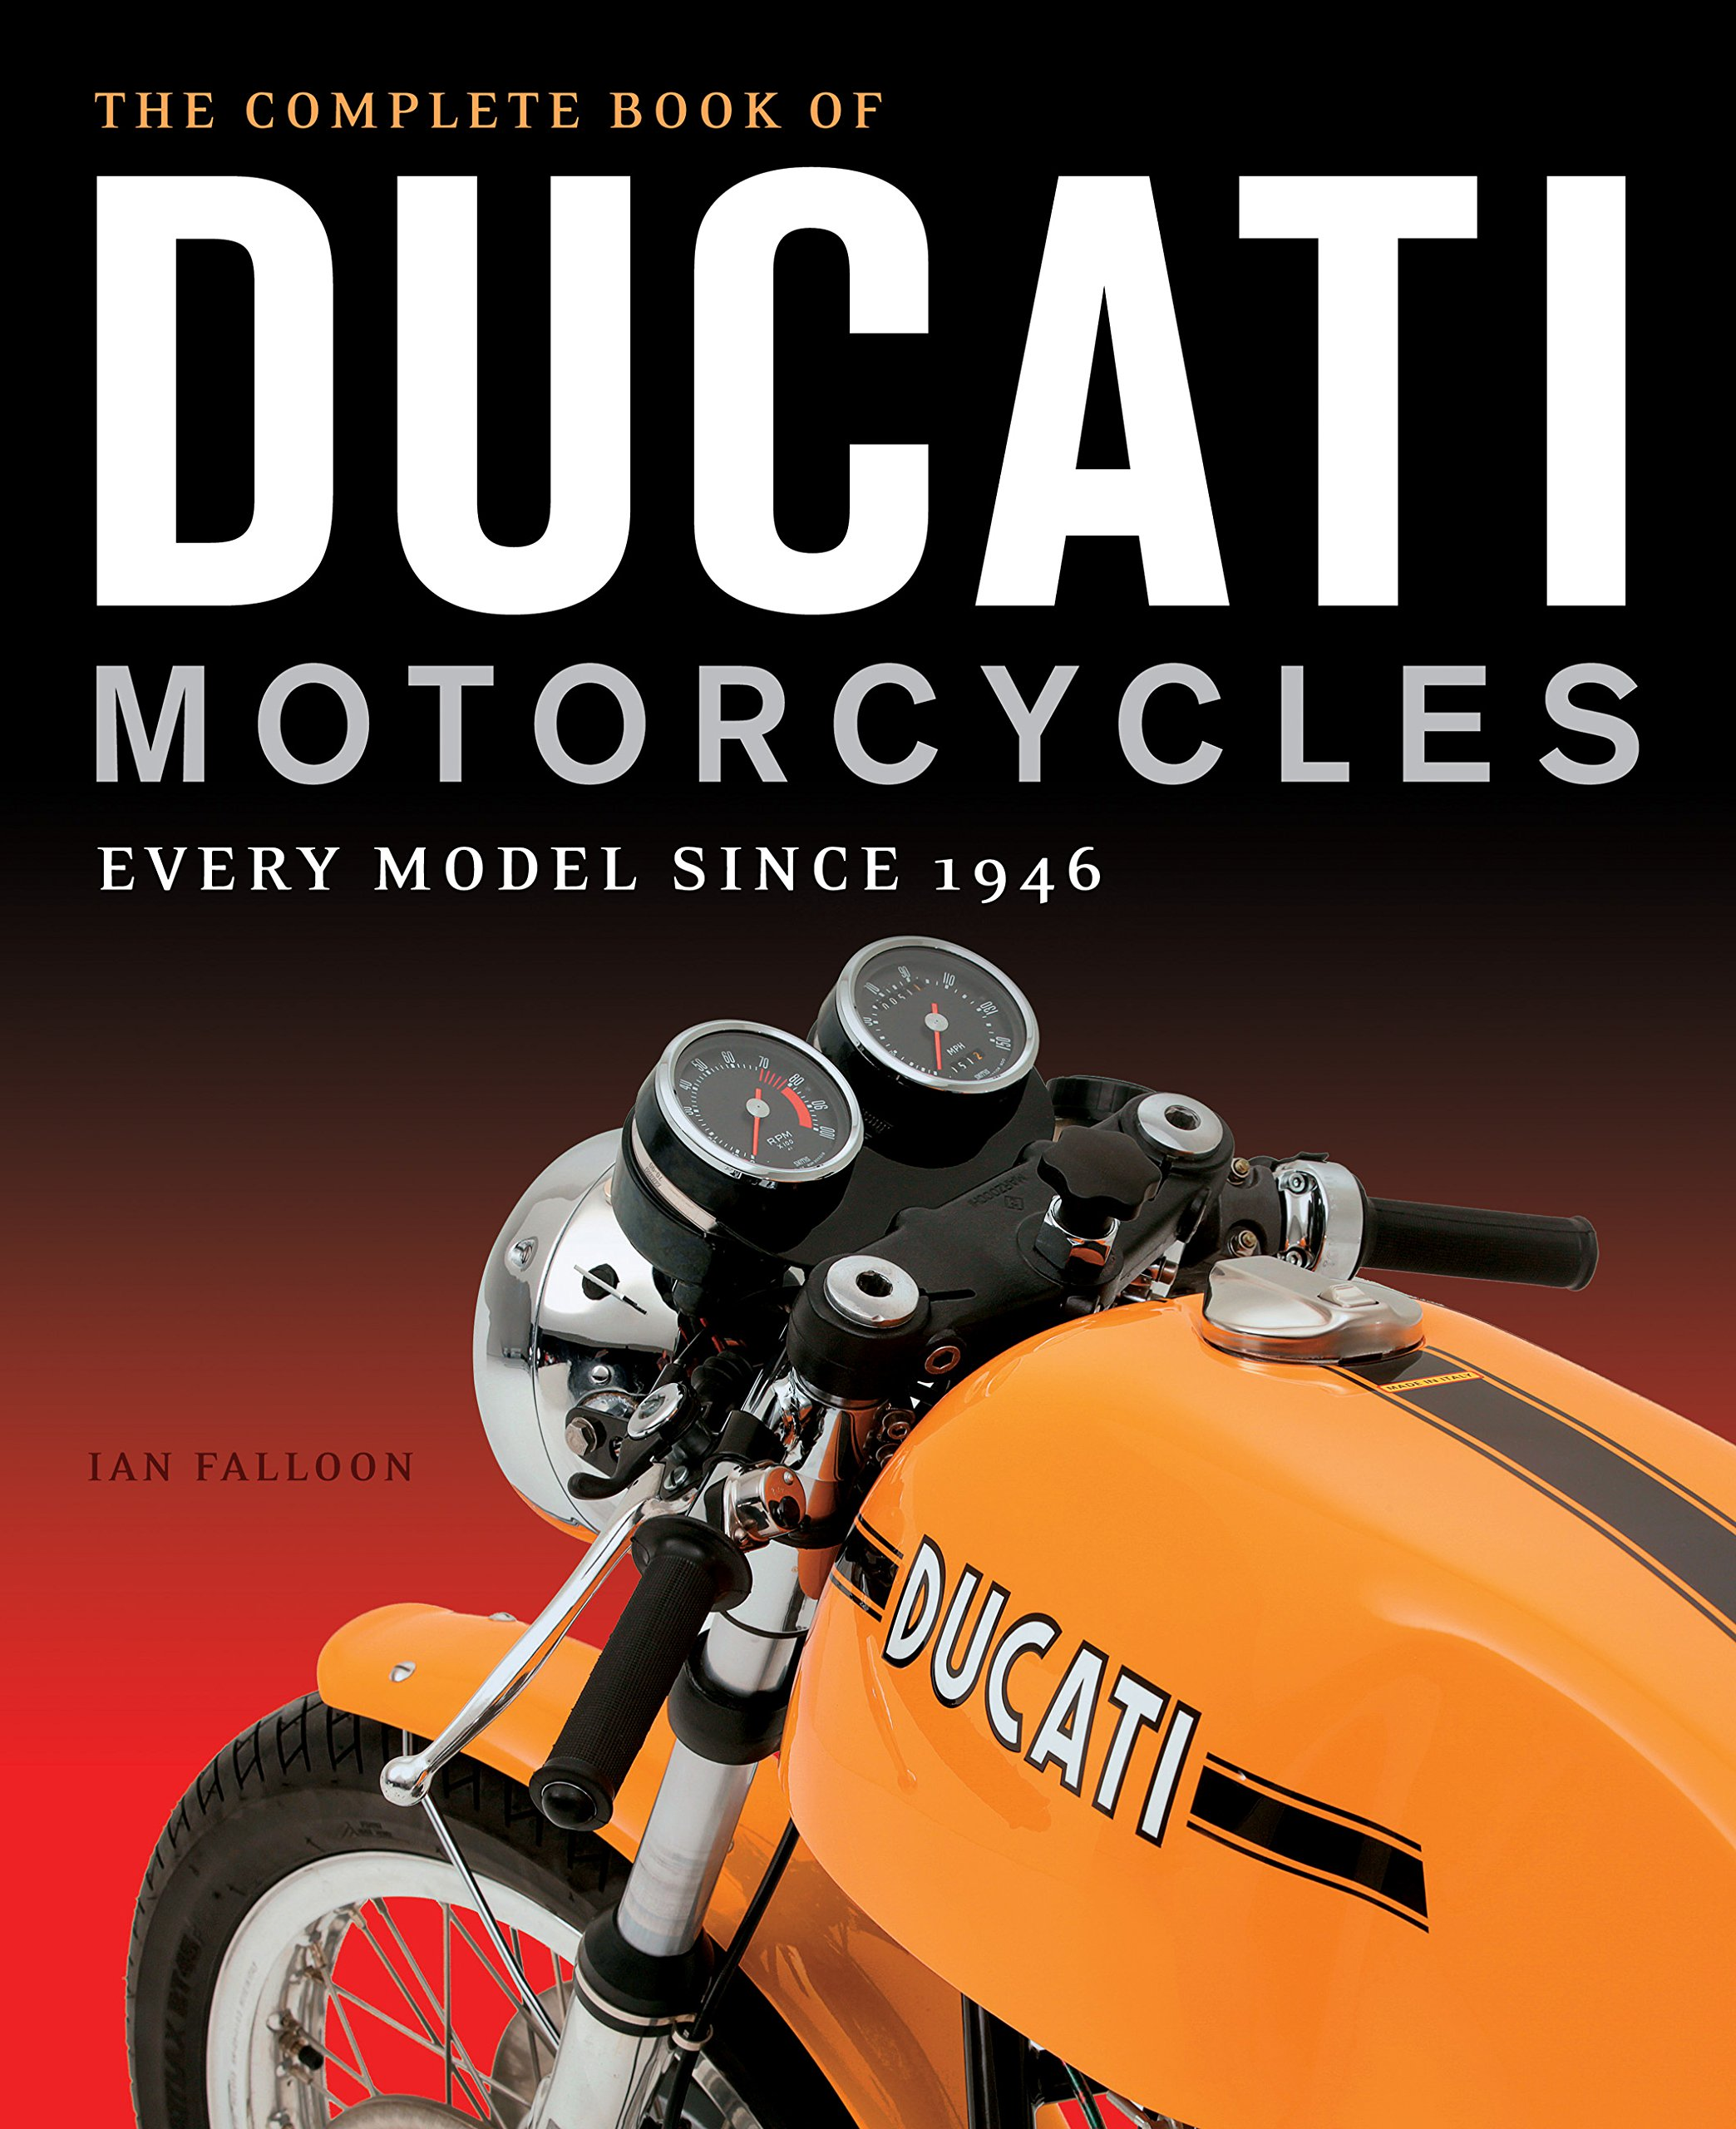 The Complete Book of Ducati Motorcycles: Every Model Since 1946: Ian  Falloon: 9780760350225: Amazon.com: Books